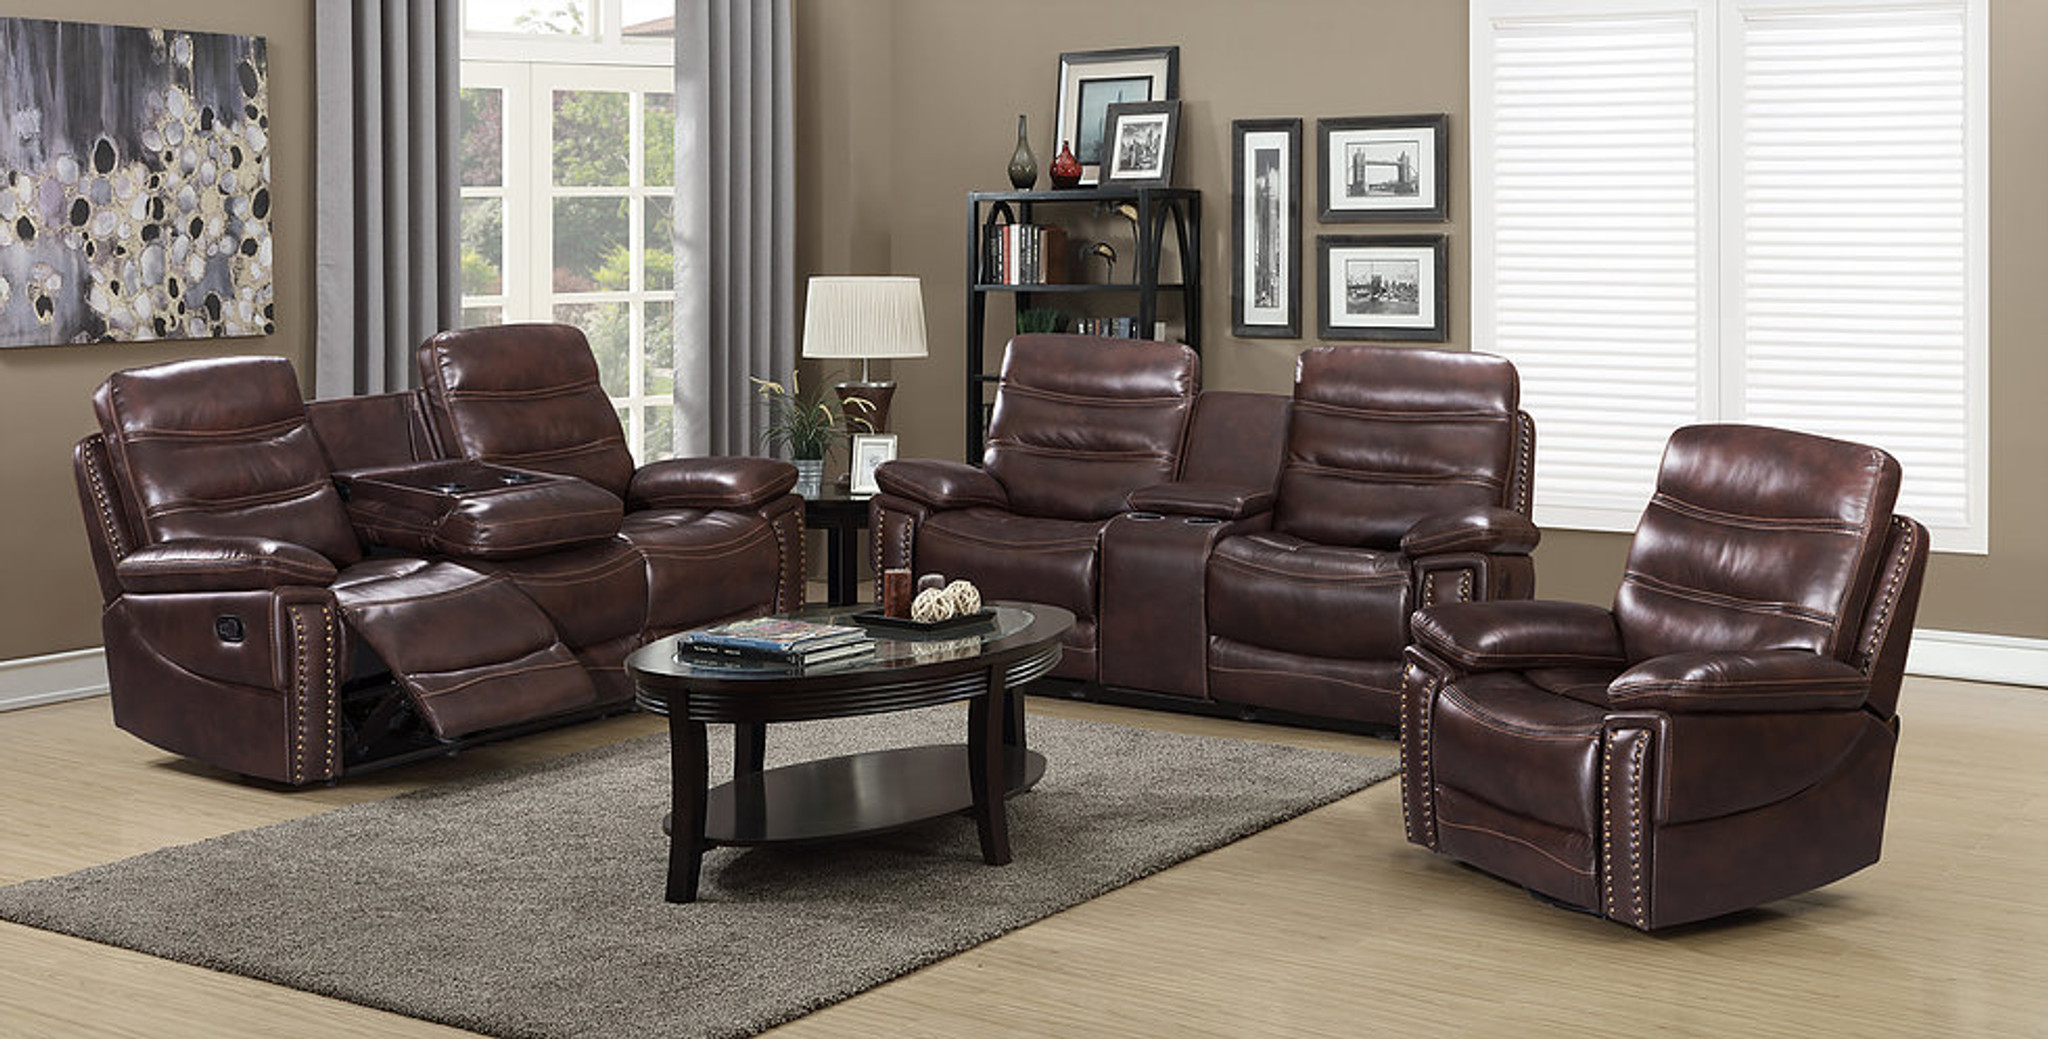 Picture of: S5169 B 2pcs Austin Brown Reclining Sofa And Loveseat Set Collection By New Era